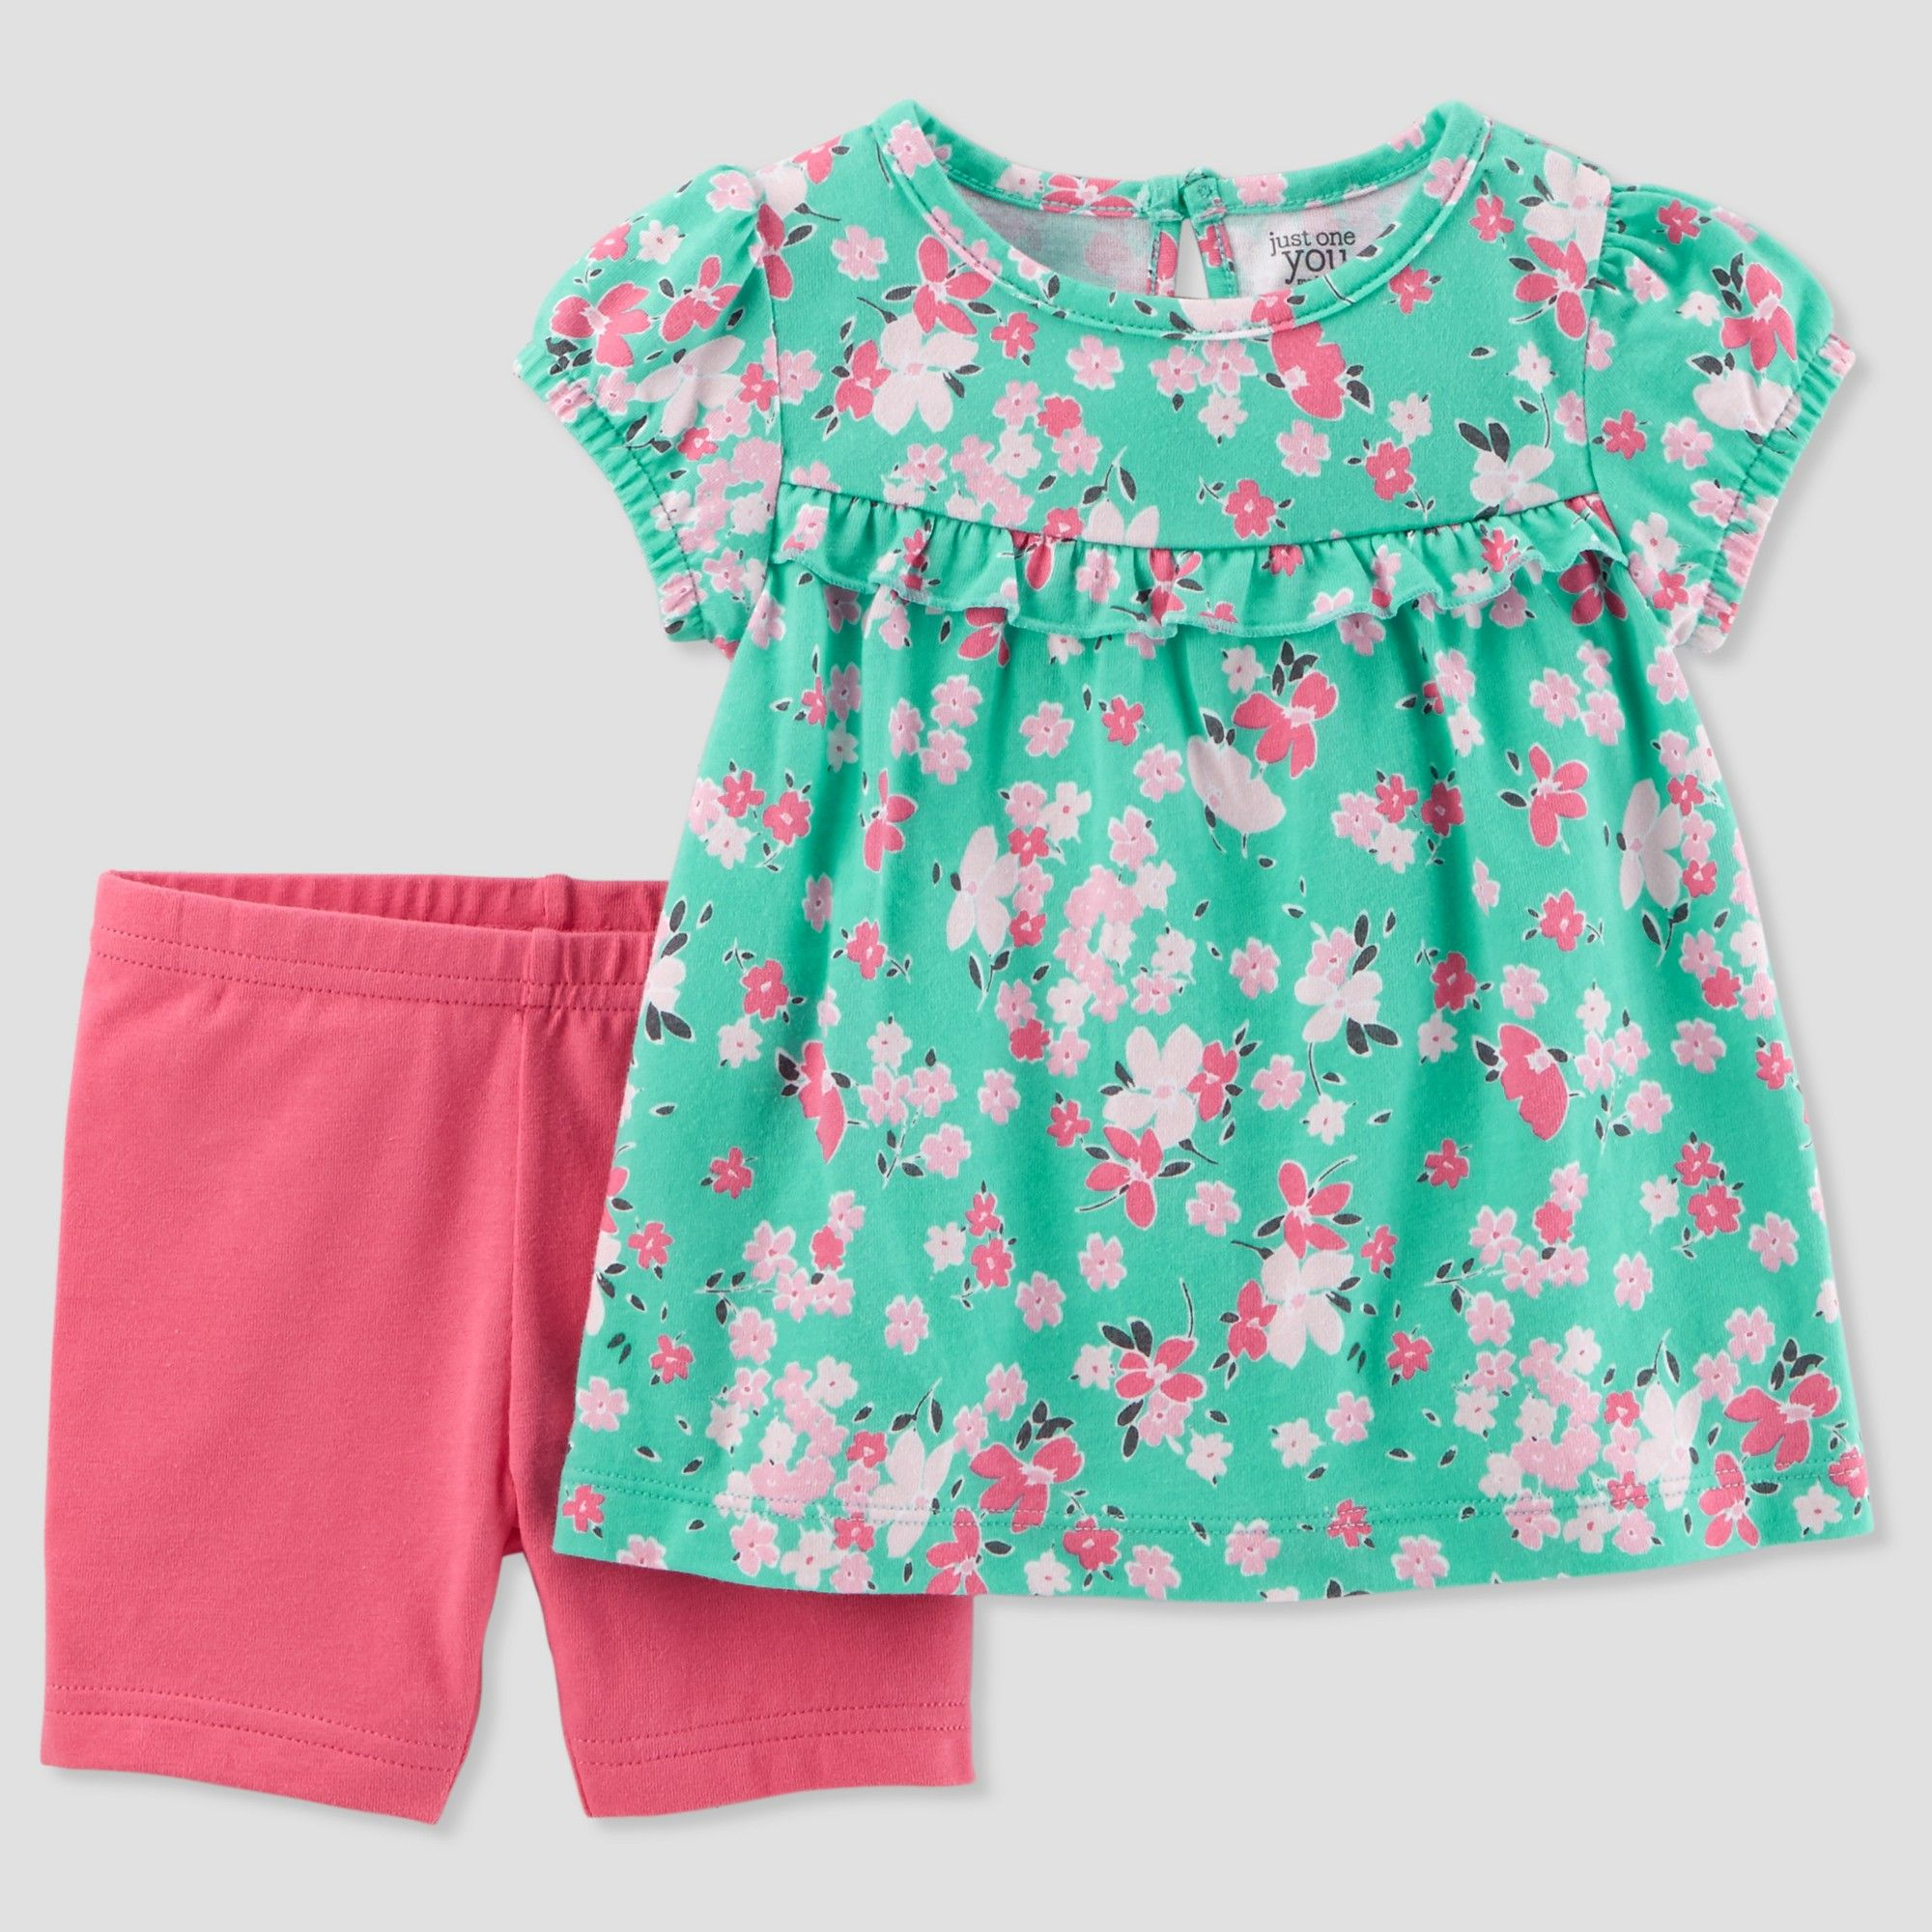 885bf5e4a Toddler Girls' 2pc Floral Shorts Set - Just One You made by carter's Green/ Pink 5T